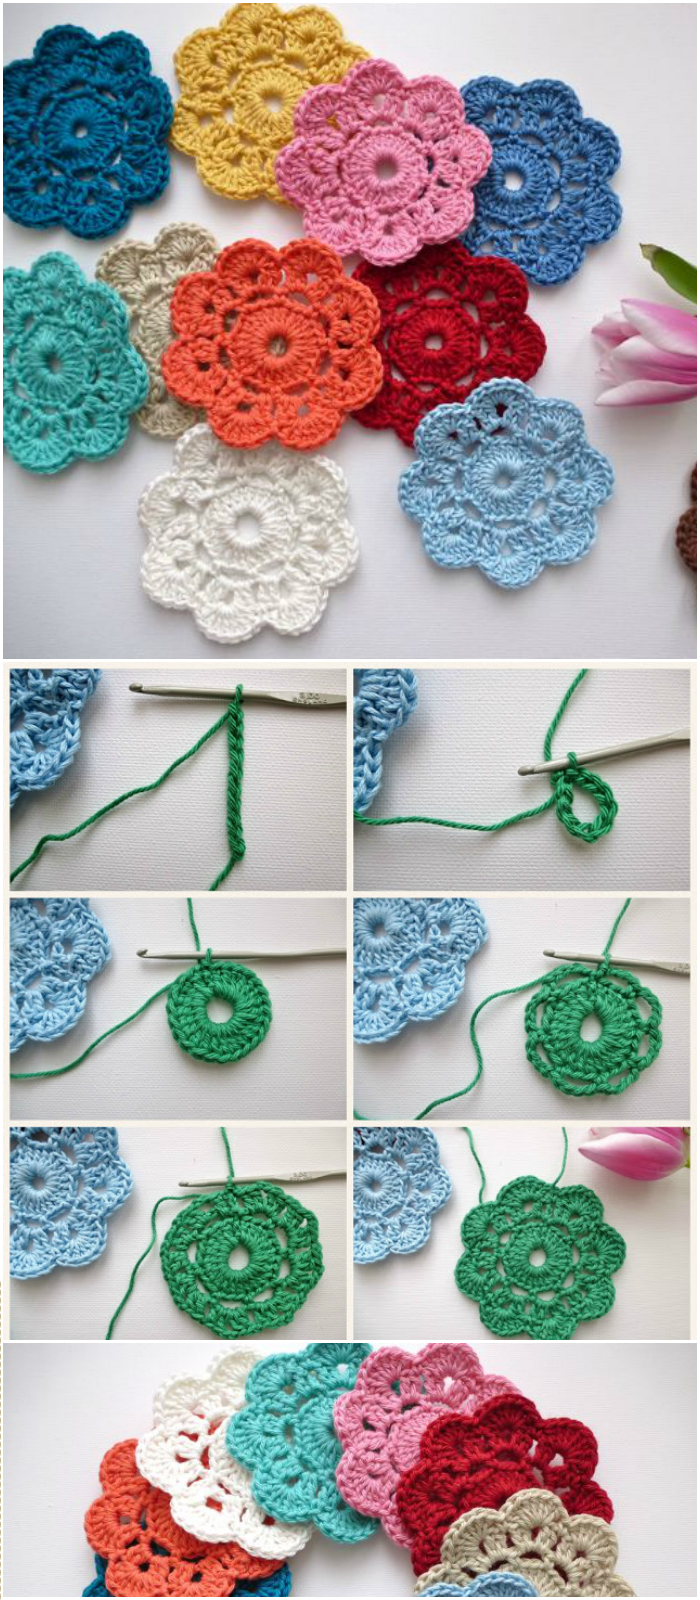 The Maybelle Crochet Flower 20 Crochet Flowers Pattern To Beautify Your Home